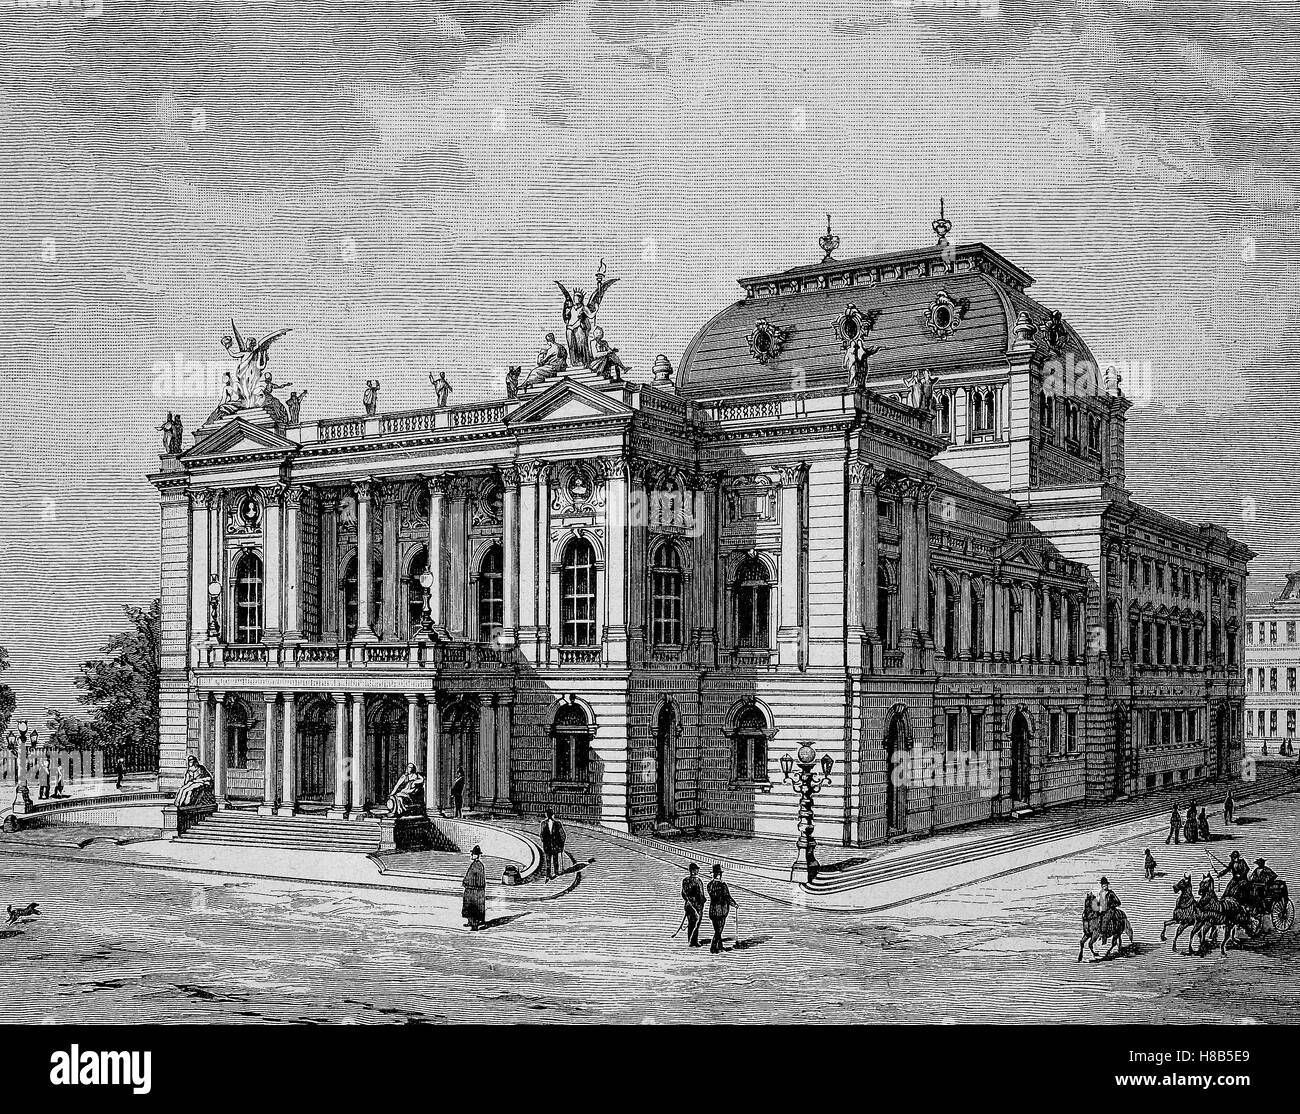 the new theater of Zurich, Switzerland, Woodcut from 1892 - Stock Image